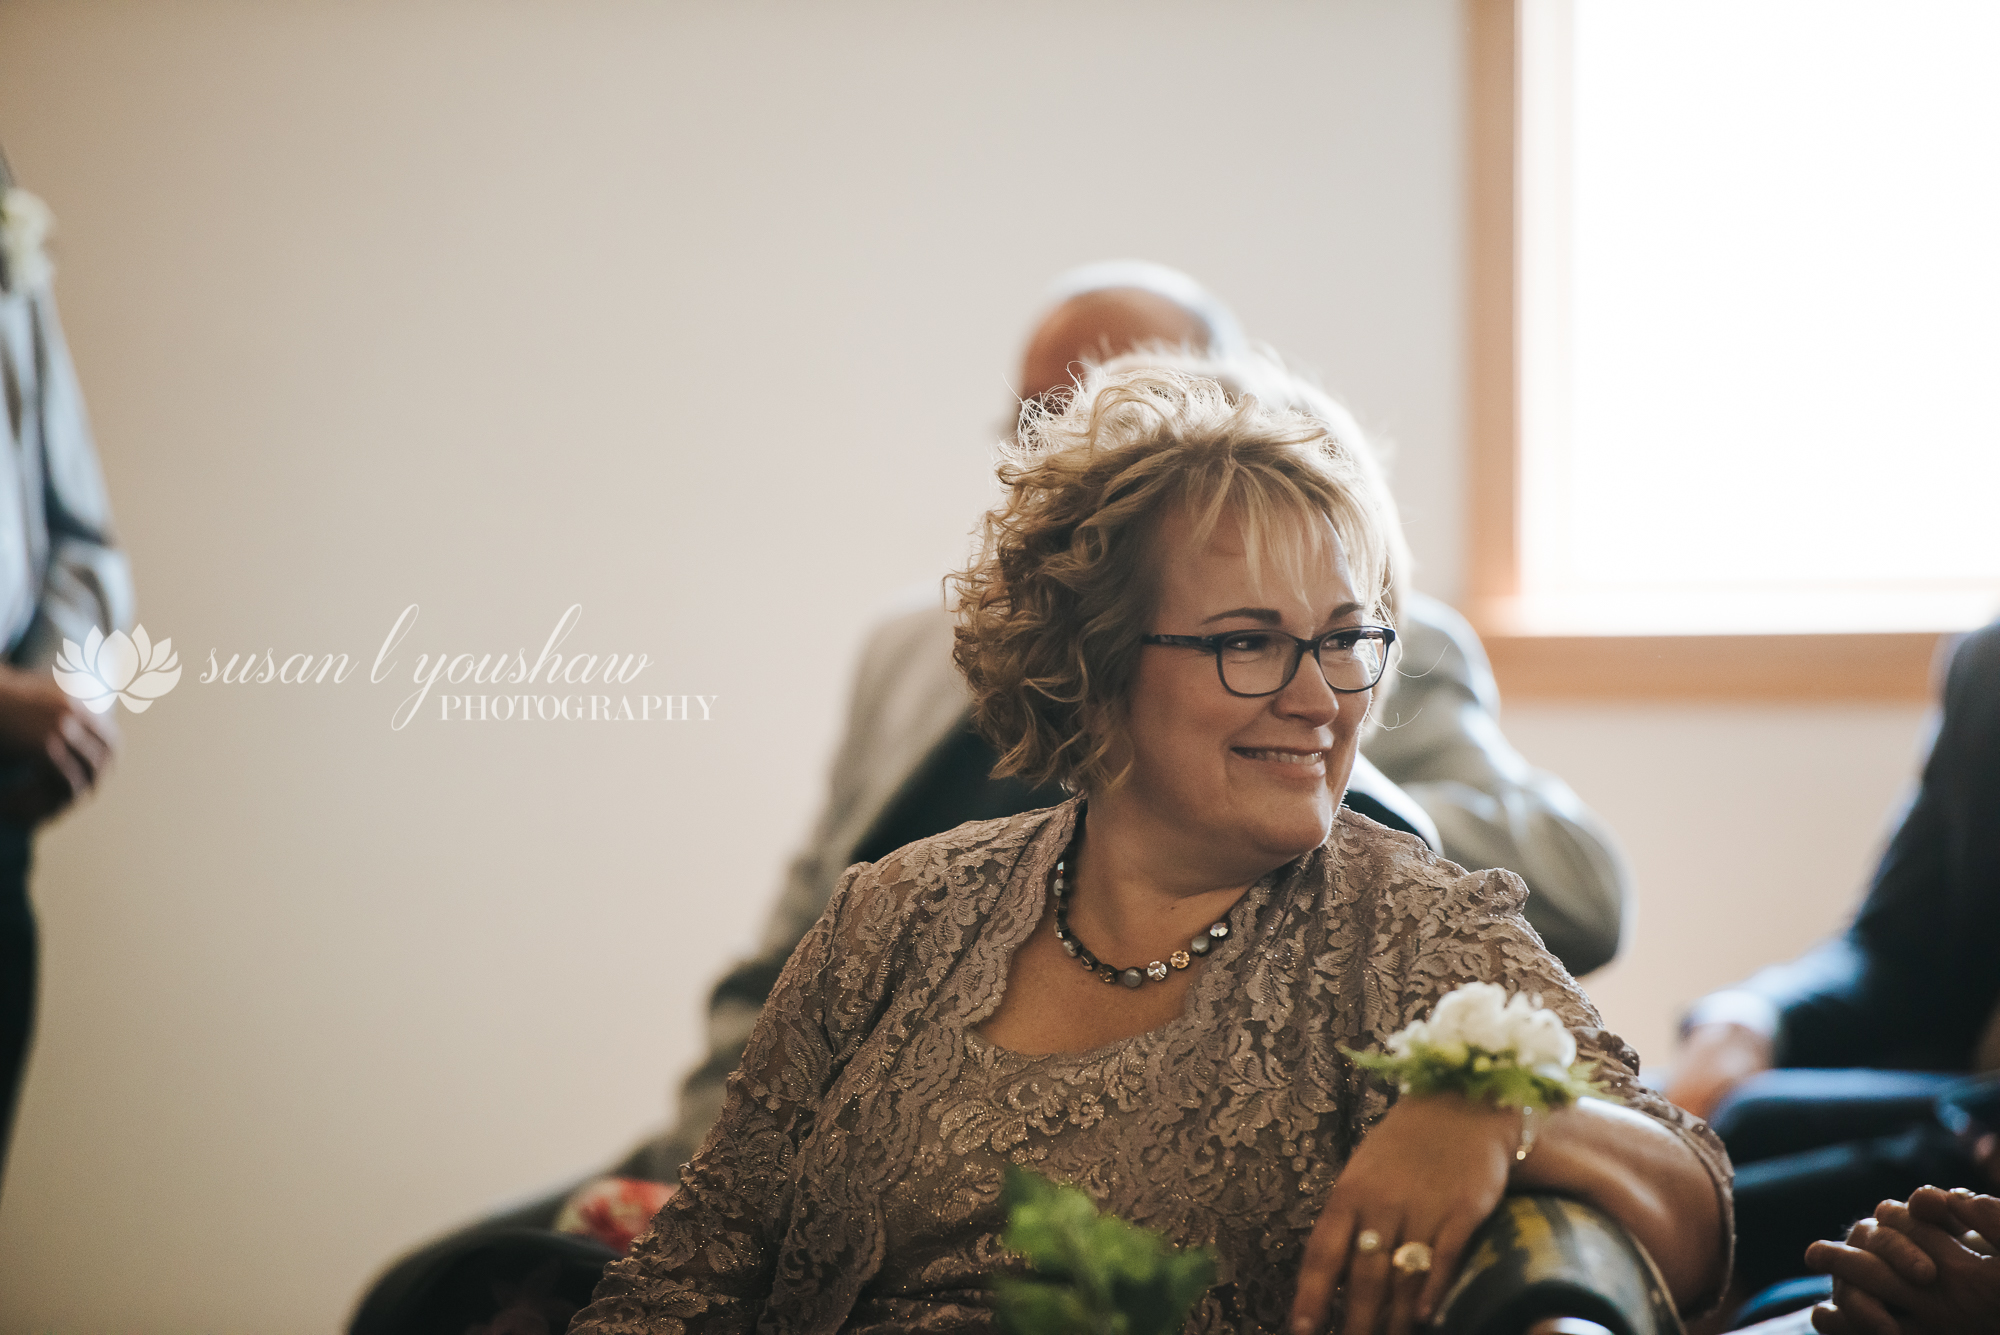 Katelyn and Wes Wedding Photos 07-13-2019 SLY Photography-50.jpg